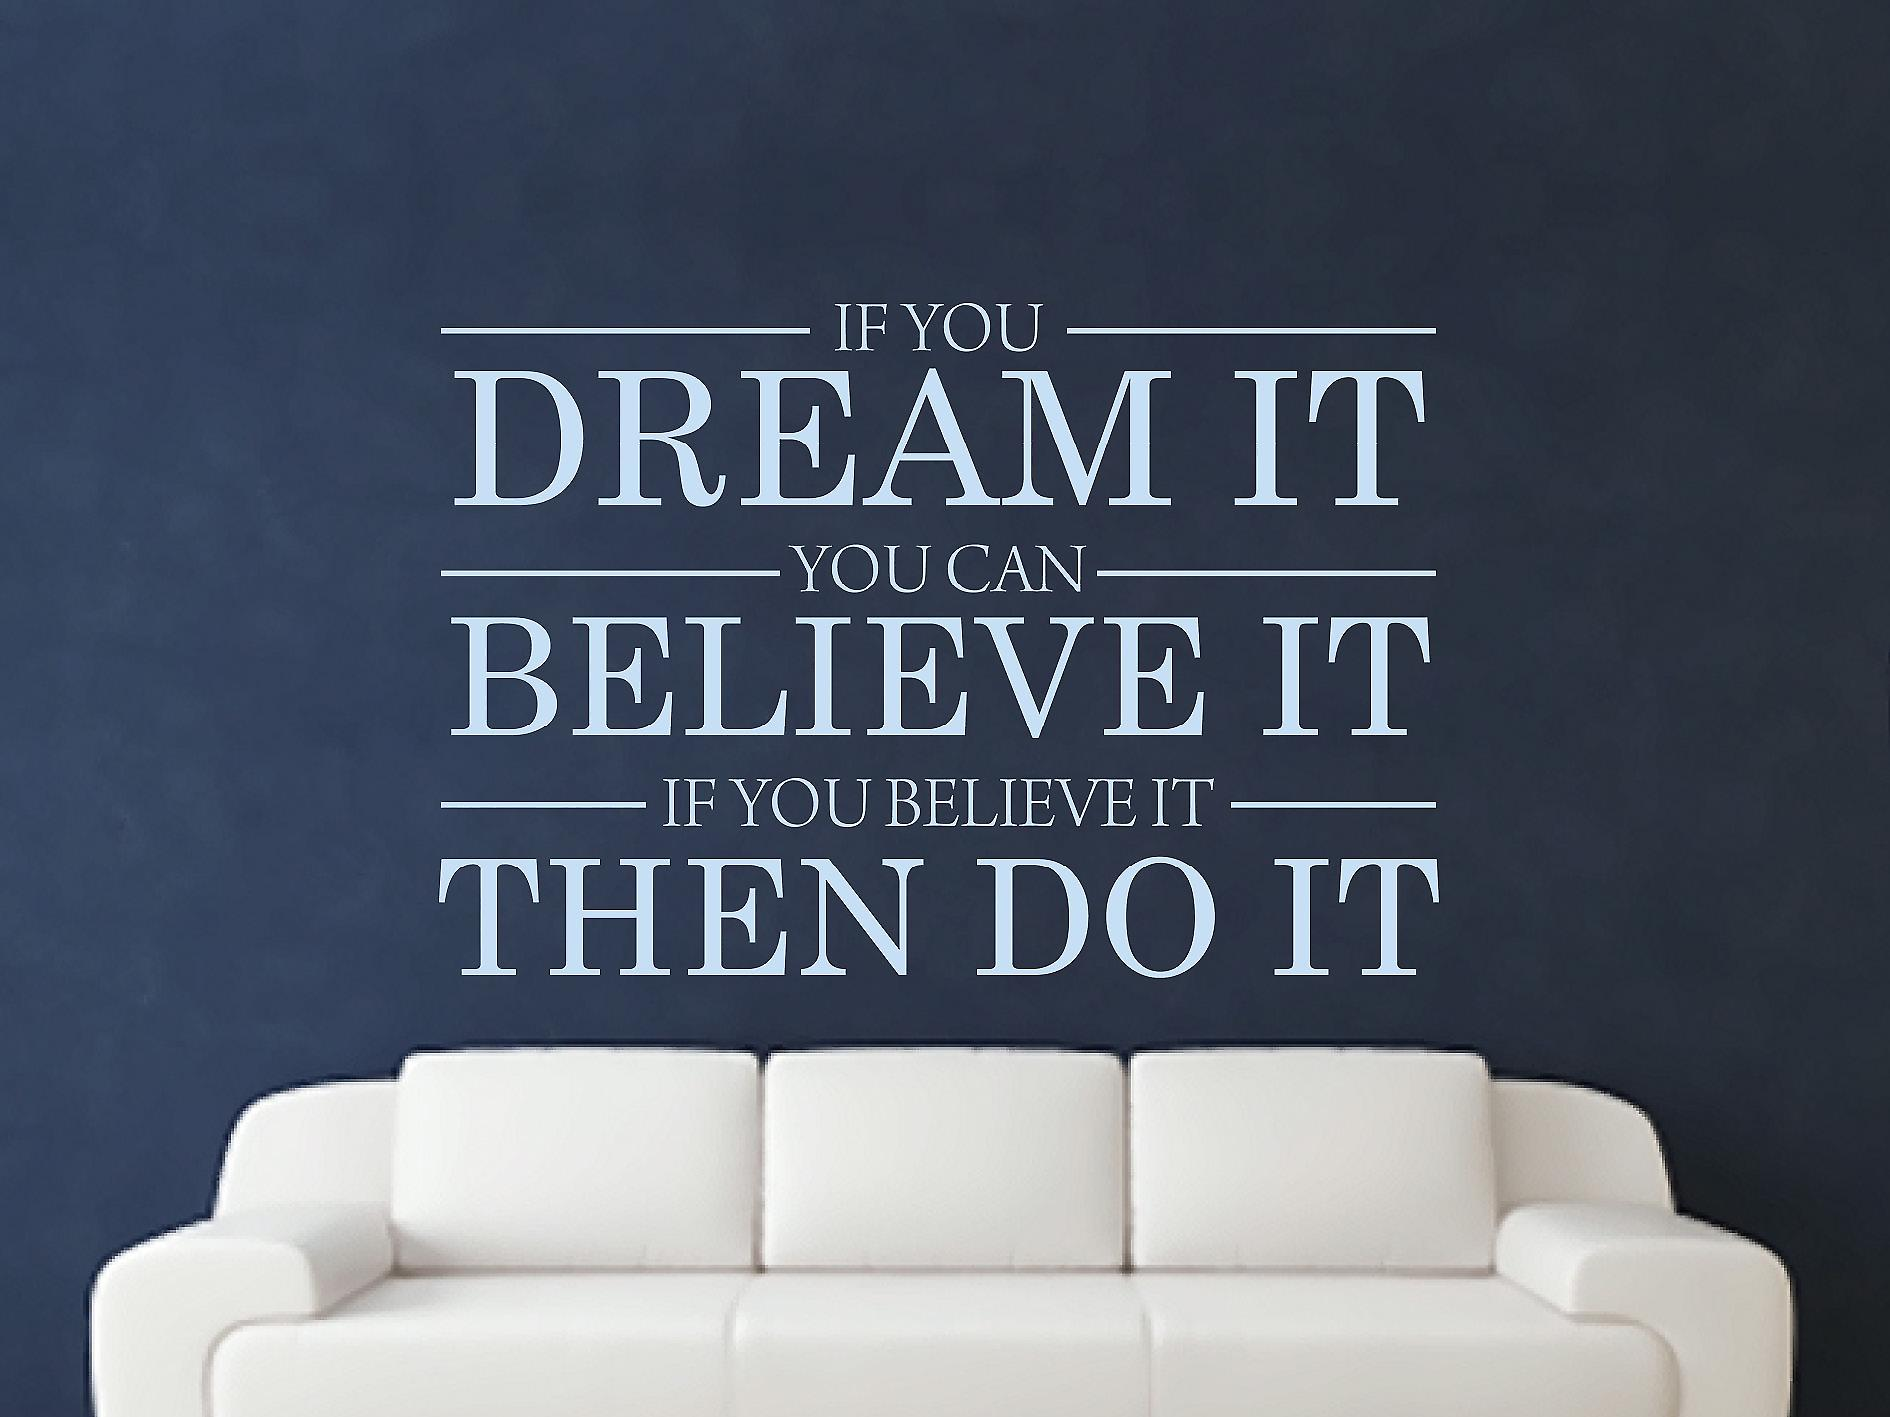 Dream It Believe It Do It Wall Art autocollants - Pastel Bleu